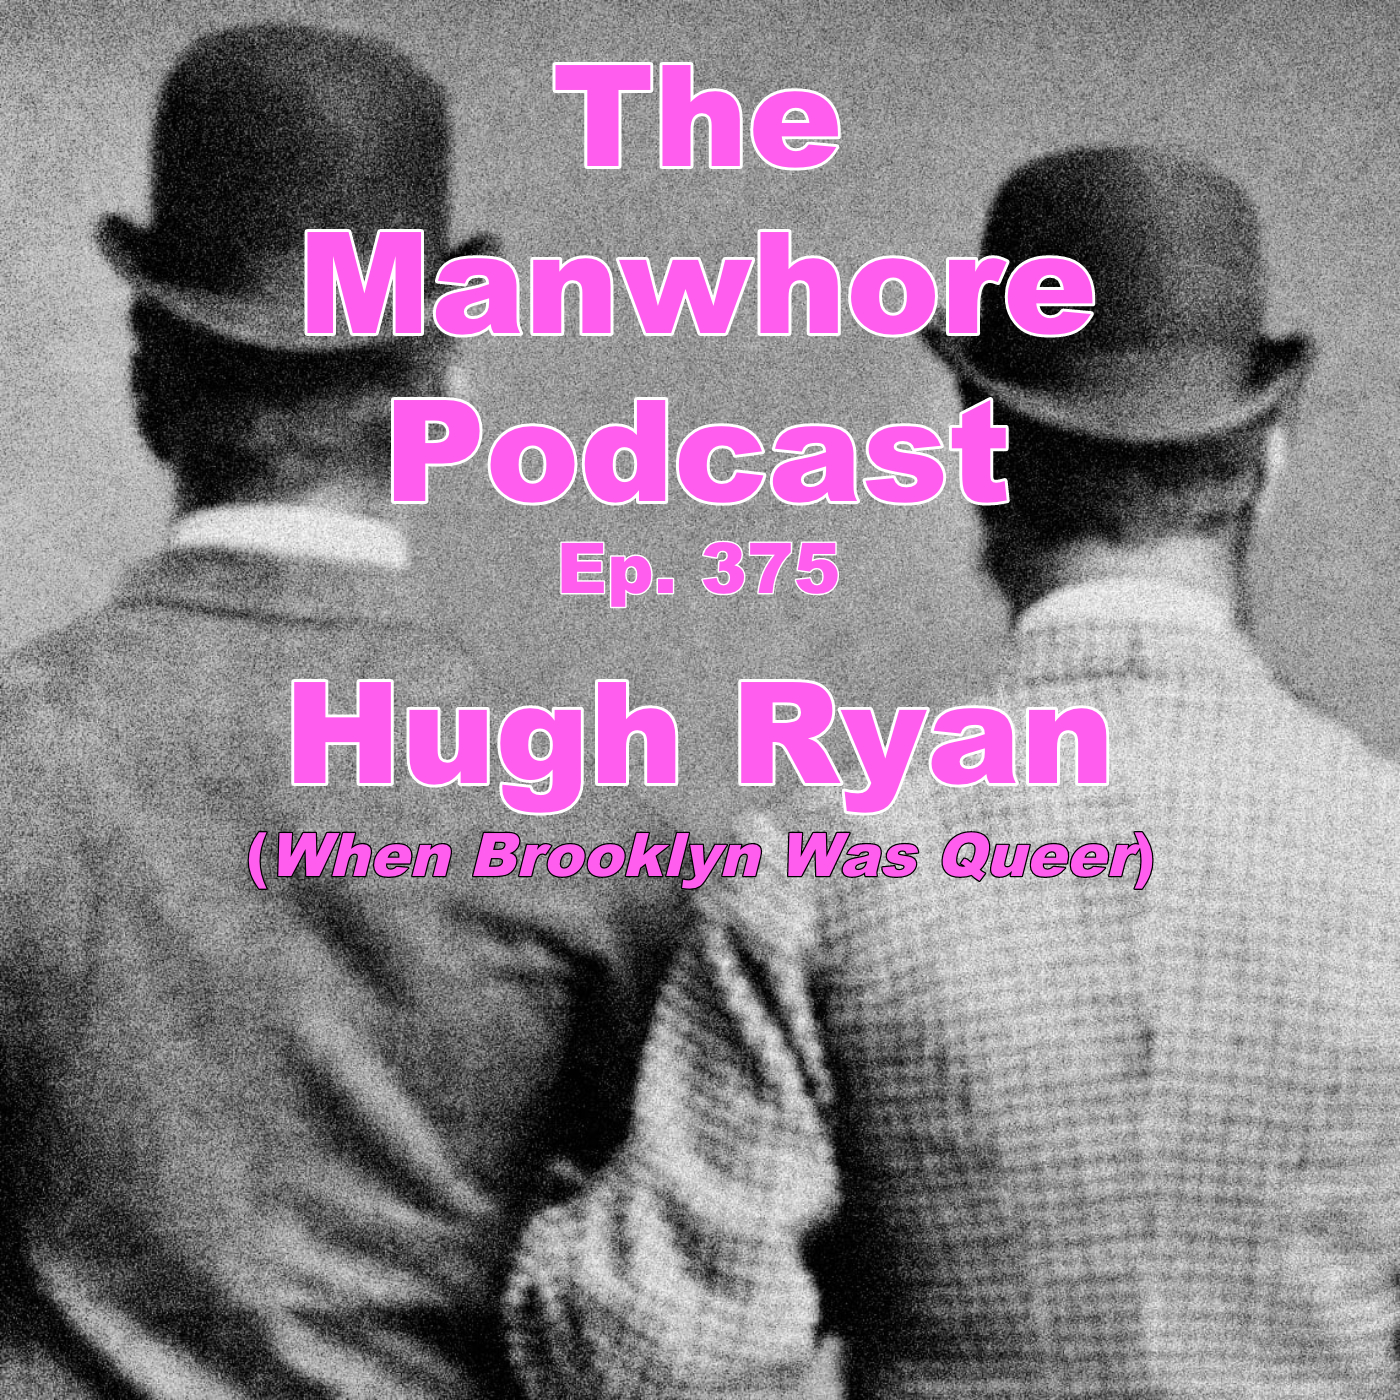 The Manwhore Podcast: A Sex-Positive Quest - Ep. 375: When Brooklyn Was Queer with Hugh Ryan